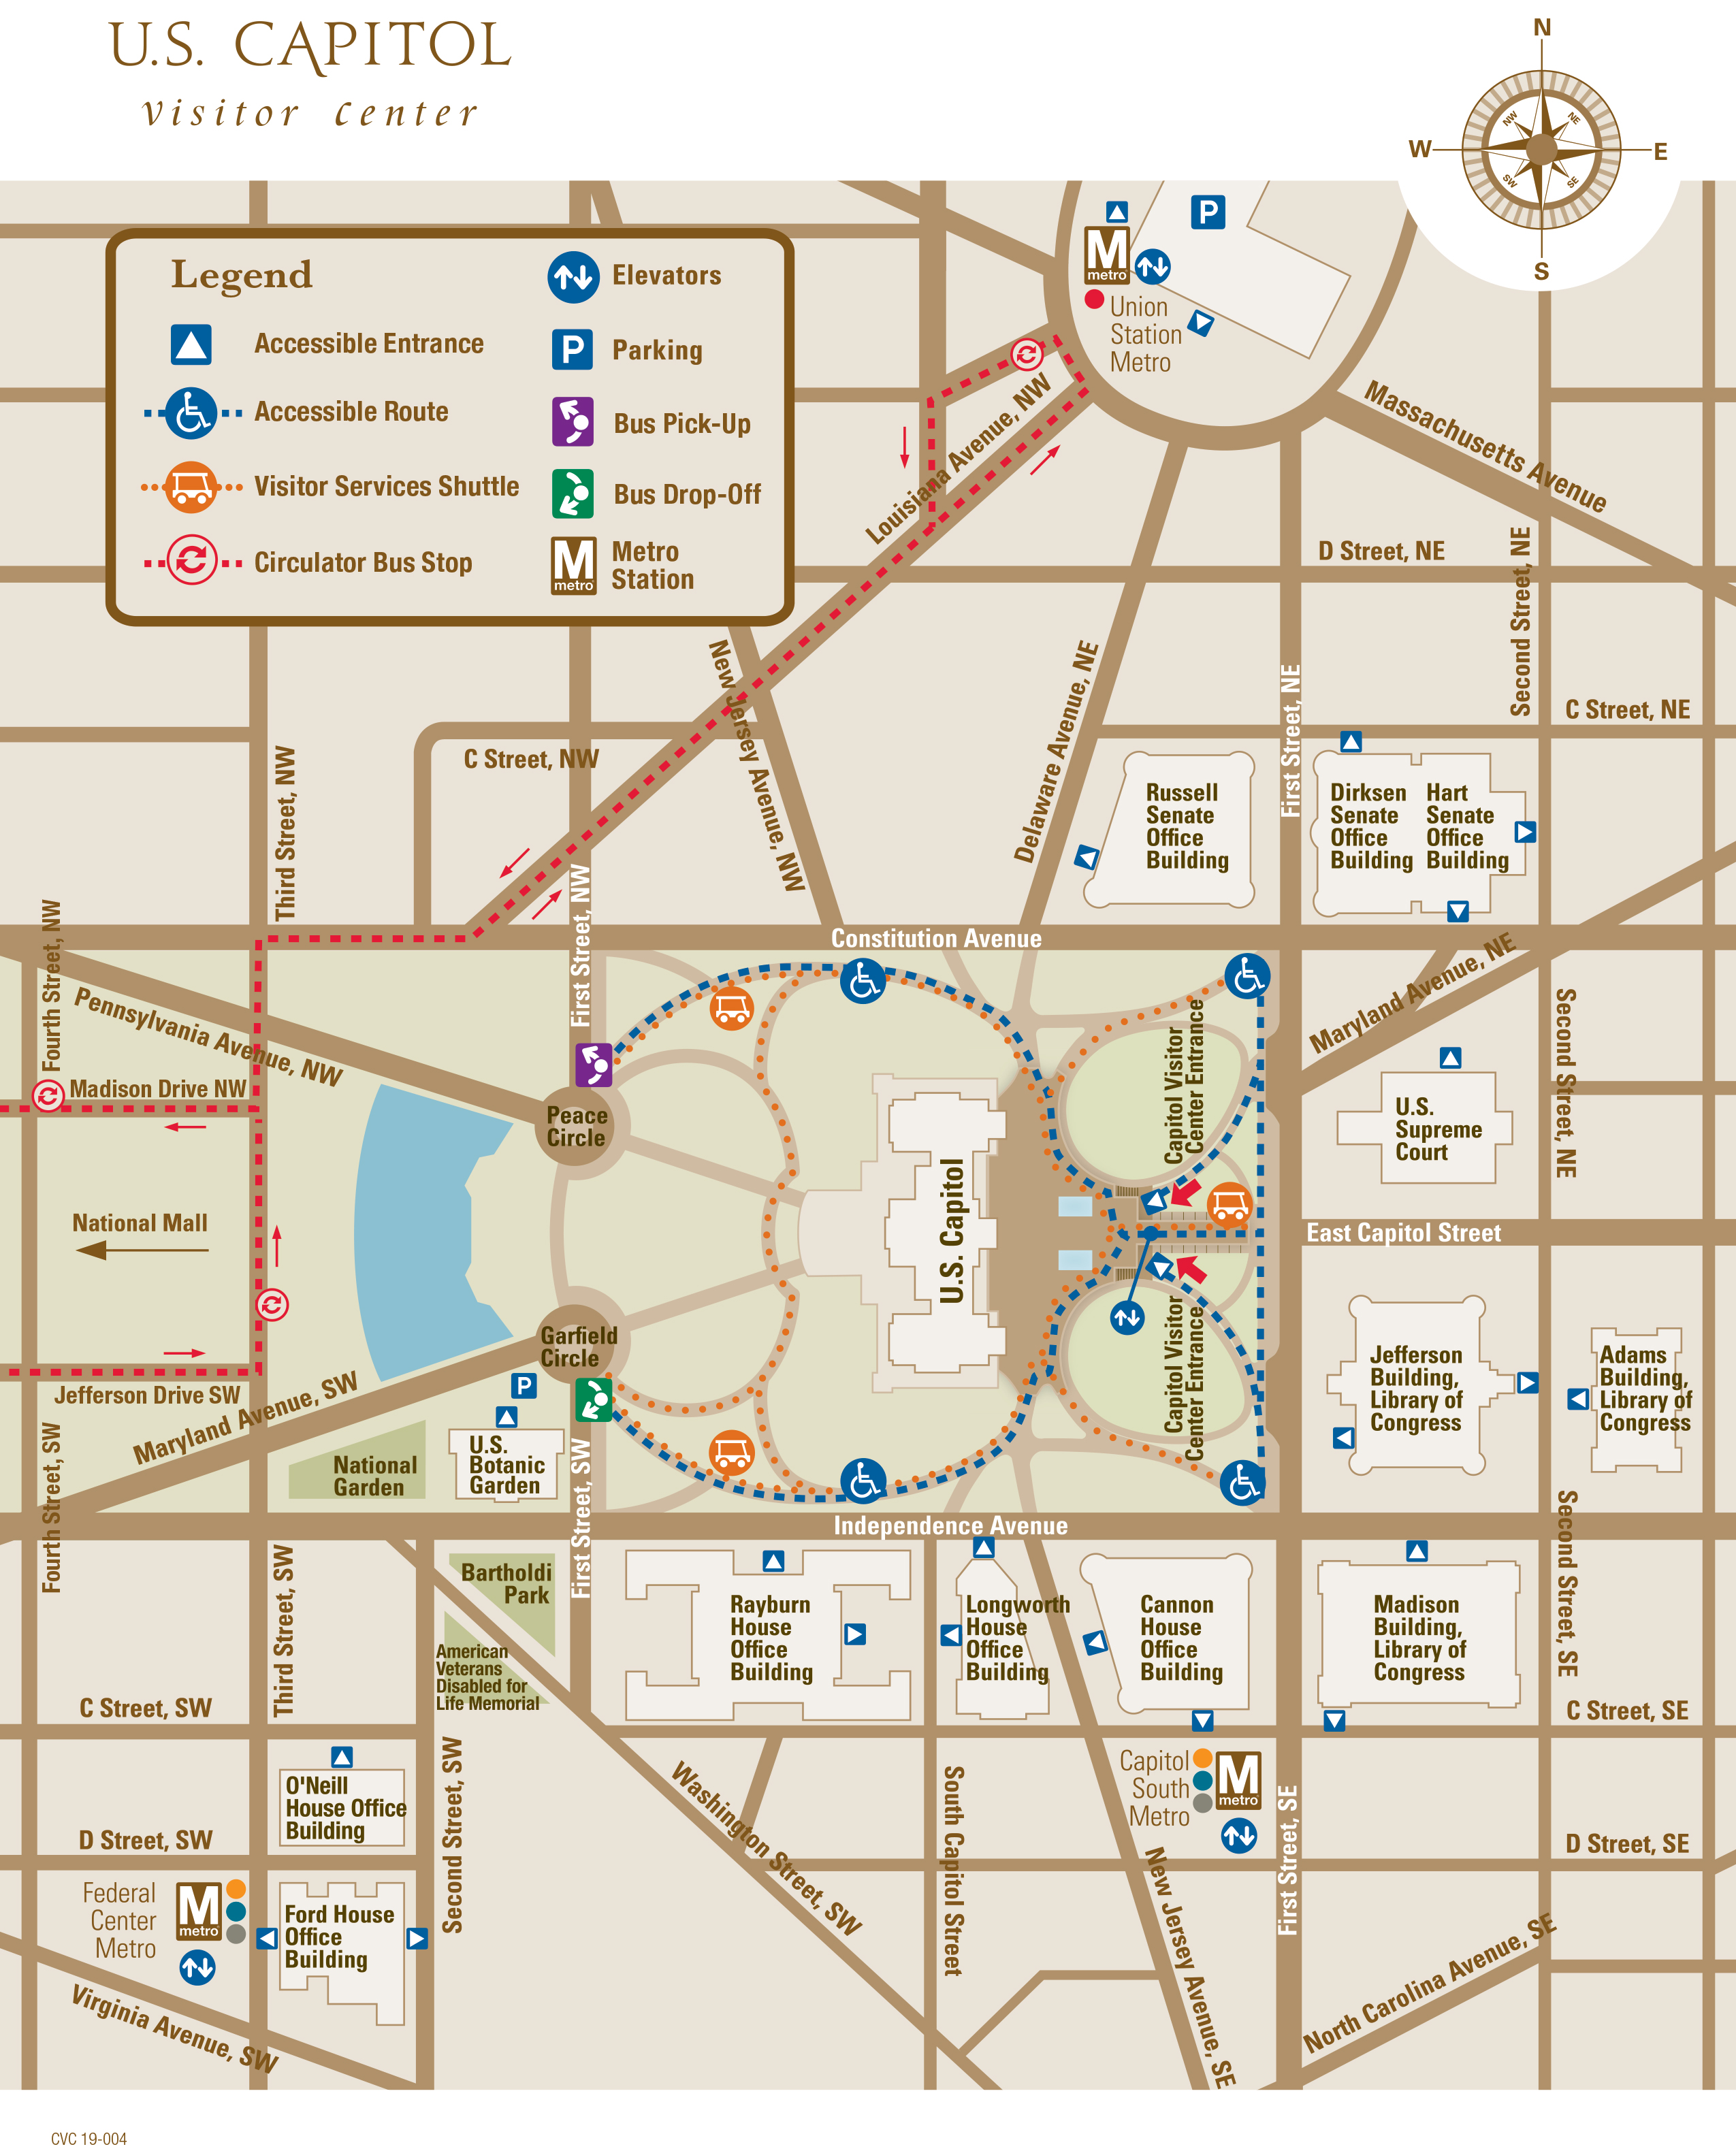 U.S. Capitol Map | U.S. Capitol Visitor Center